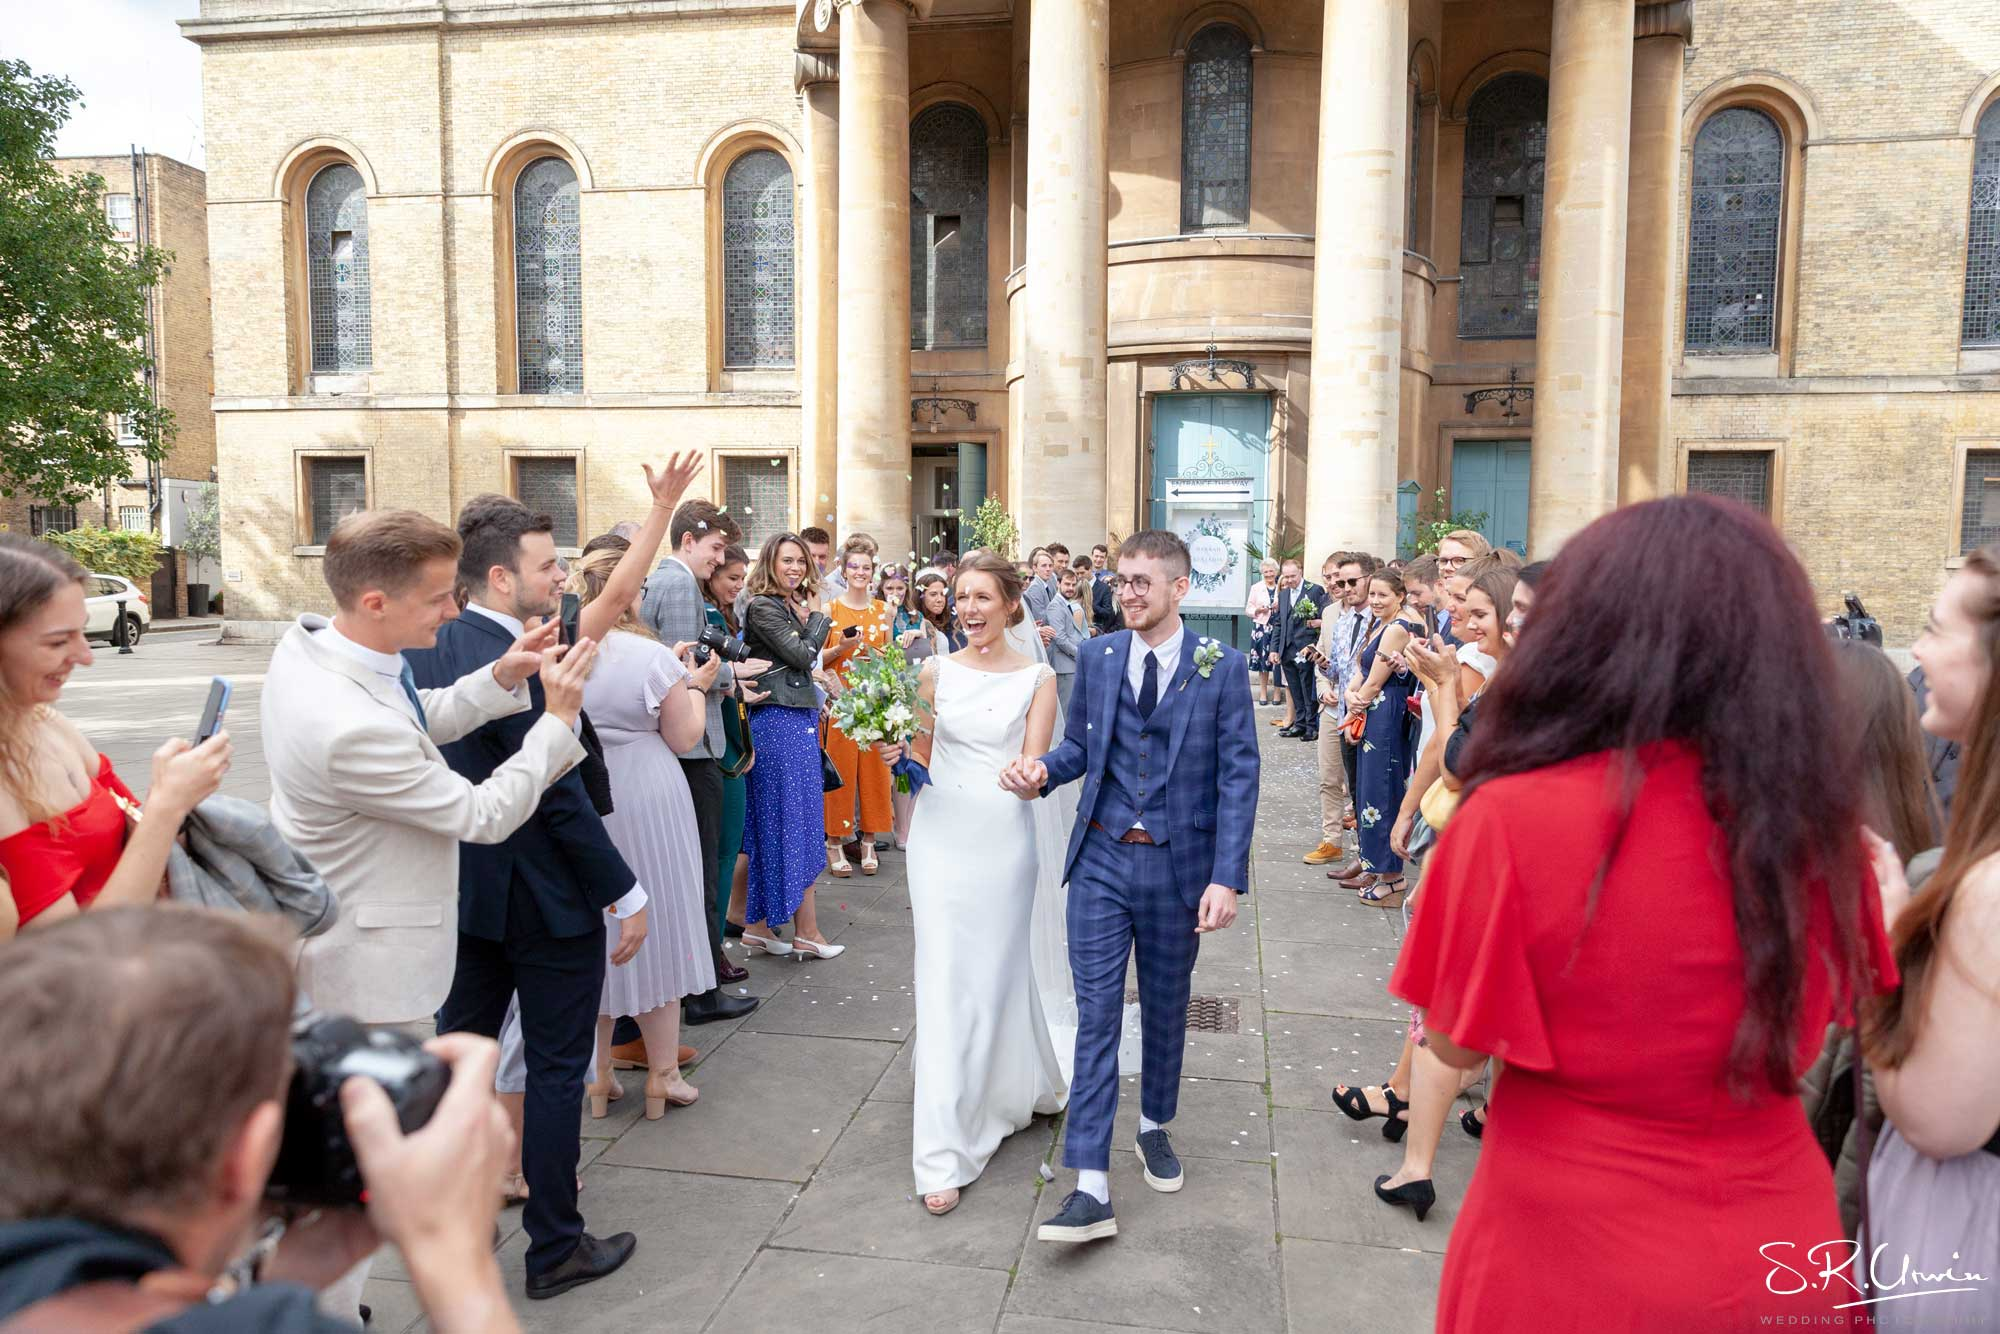 Bride and groom leaving the venue whilst guest throw confetti